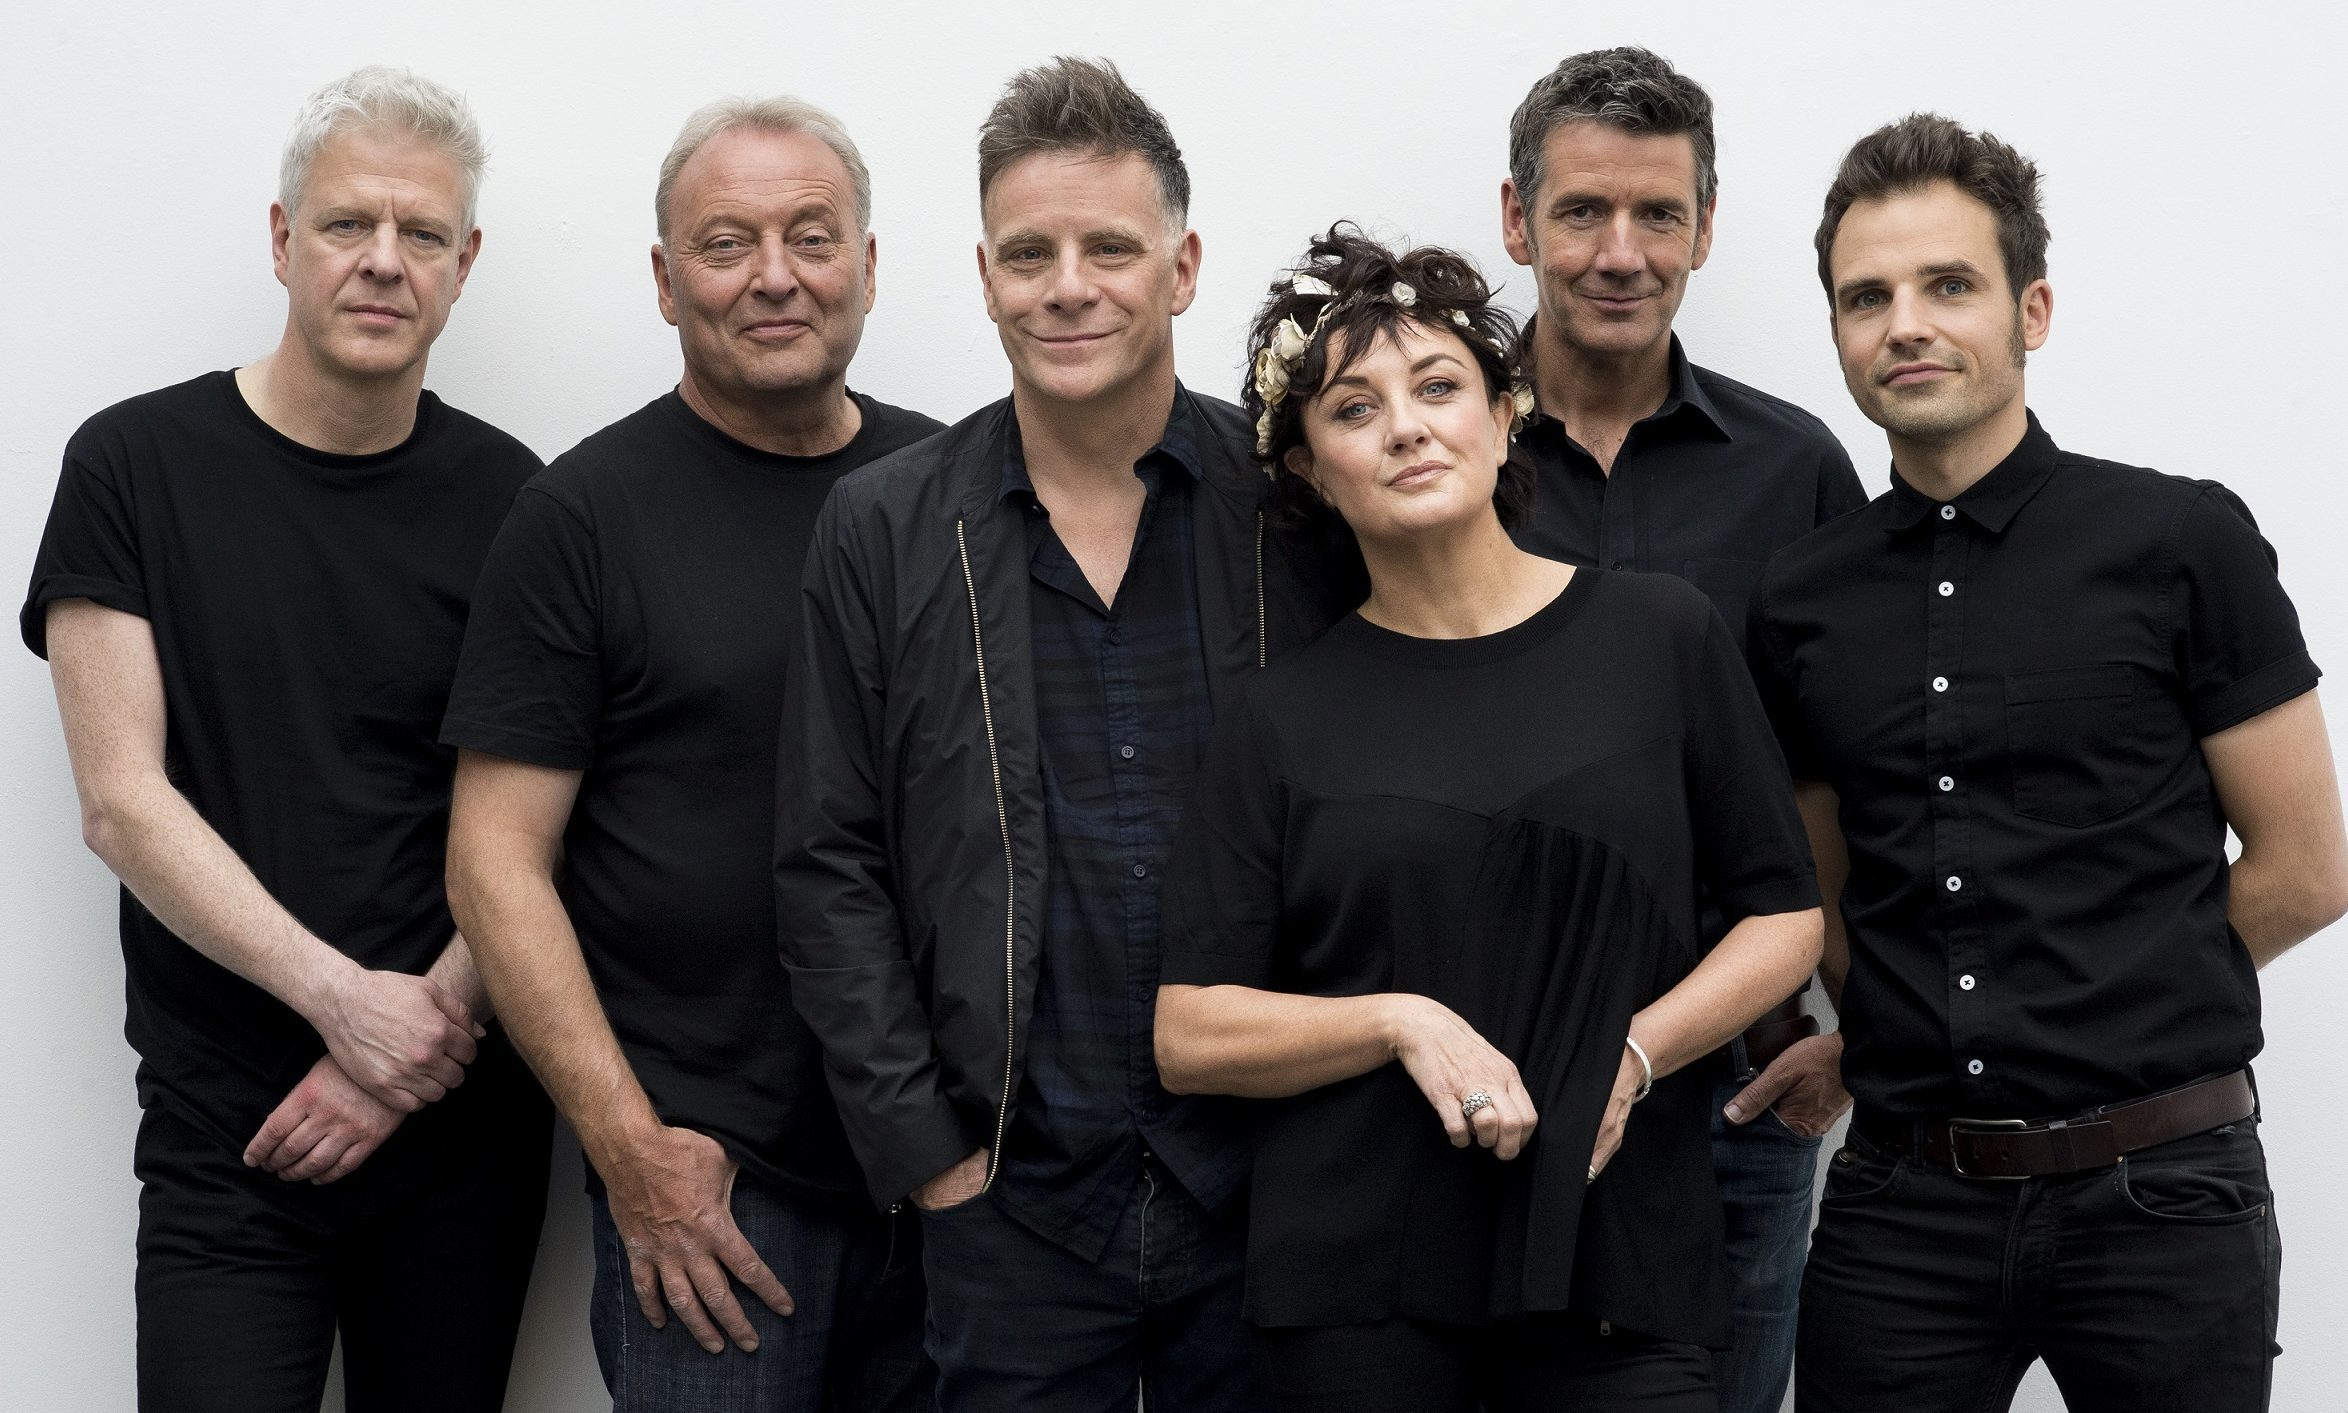 Deacon Blue will perform at this year's MoFest